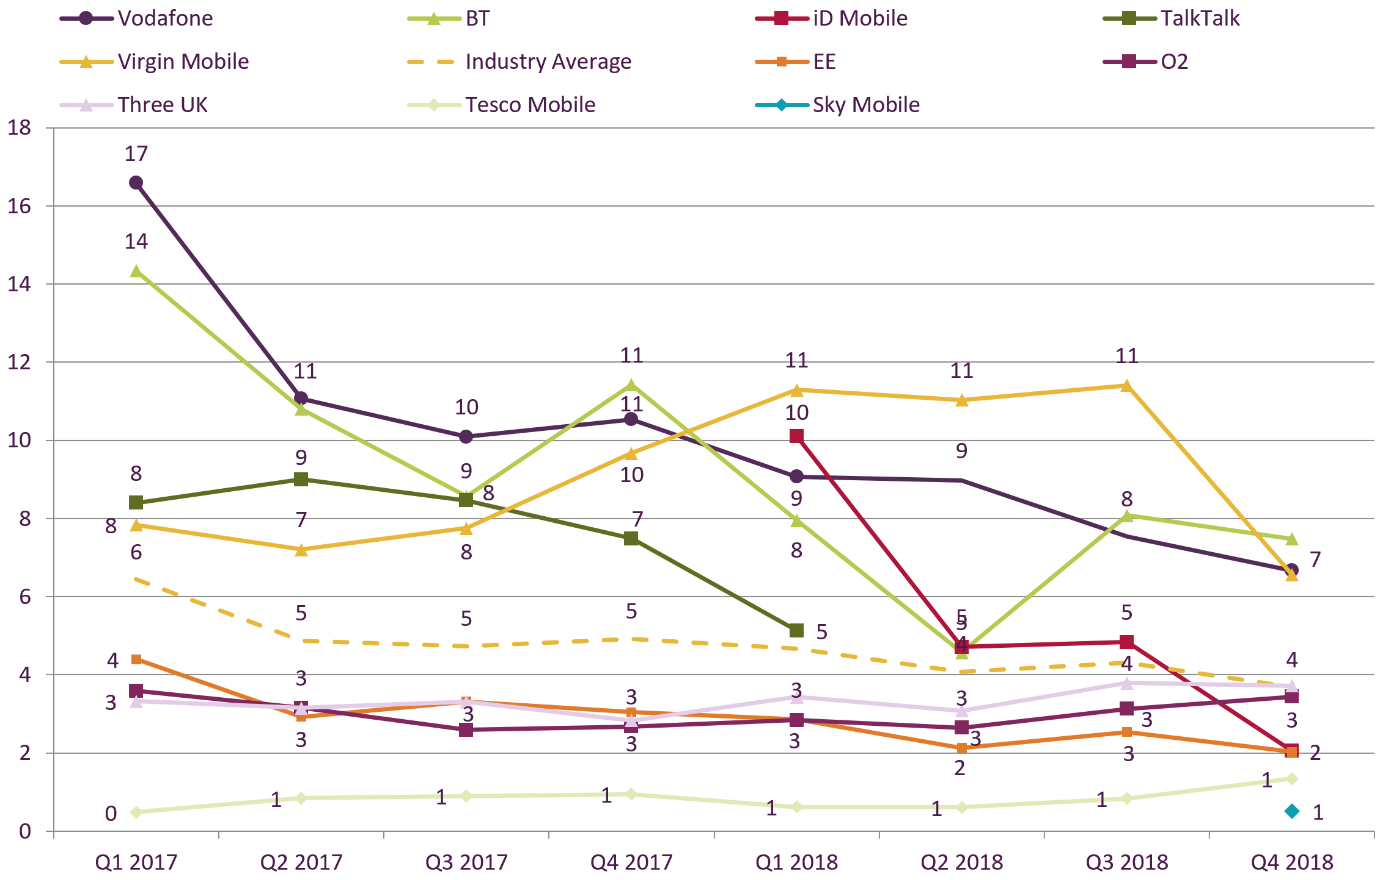 From Q3 2018 to Q4 2018, the pay-monthly mobile complaints figures per 100,000 customers decreased for Vodafone from 8 to 7; decreased for Virgin Mobile from 11 to 7; remained at 4 for Three UK; decreased from 8 to 7 for BT; remained at 1 for Tesco Mobile; started at 1 for Sky Mobile; decreased from 5 to 3